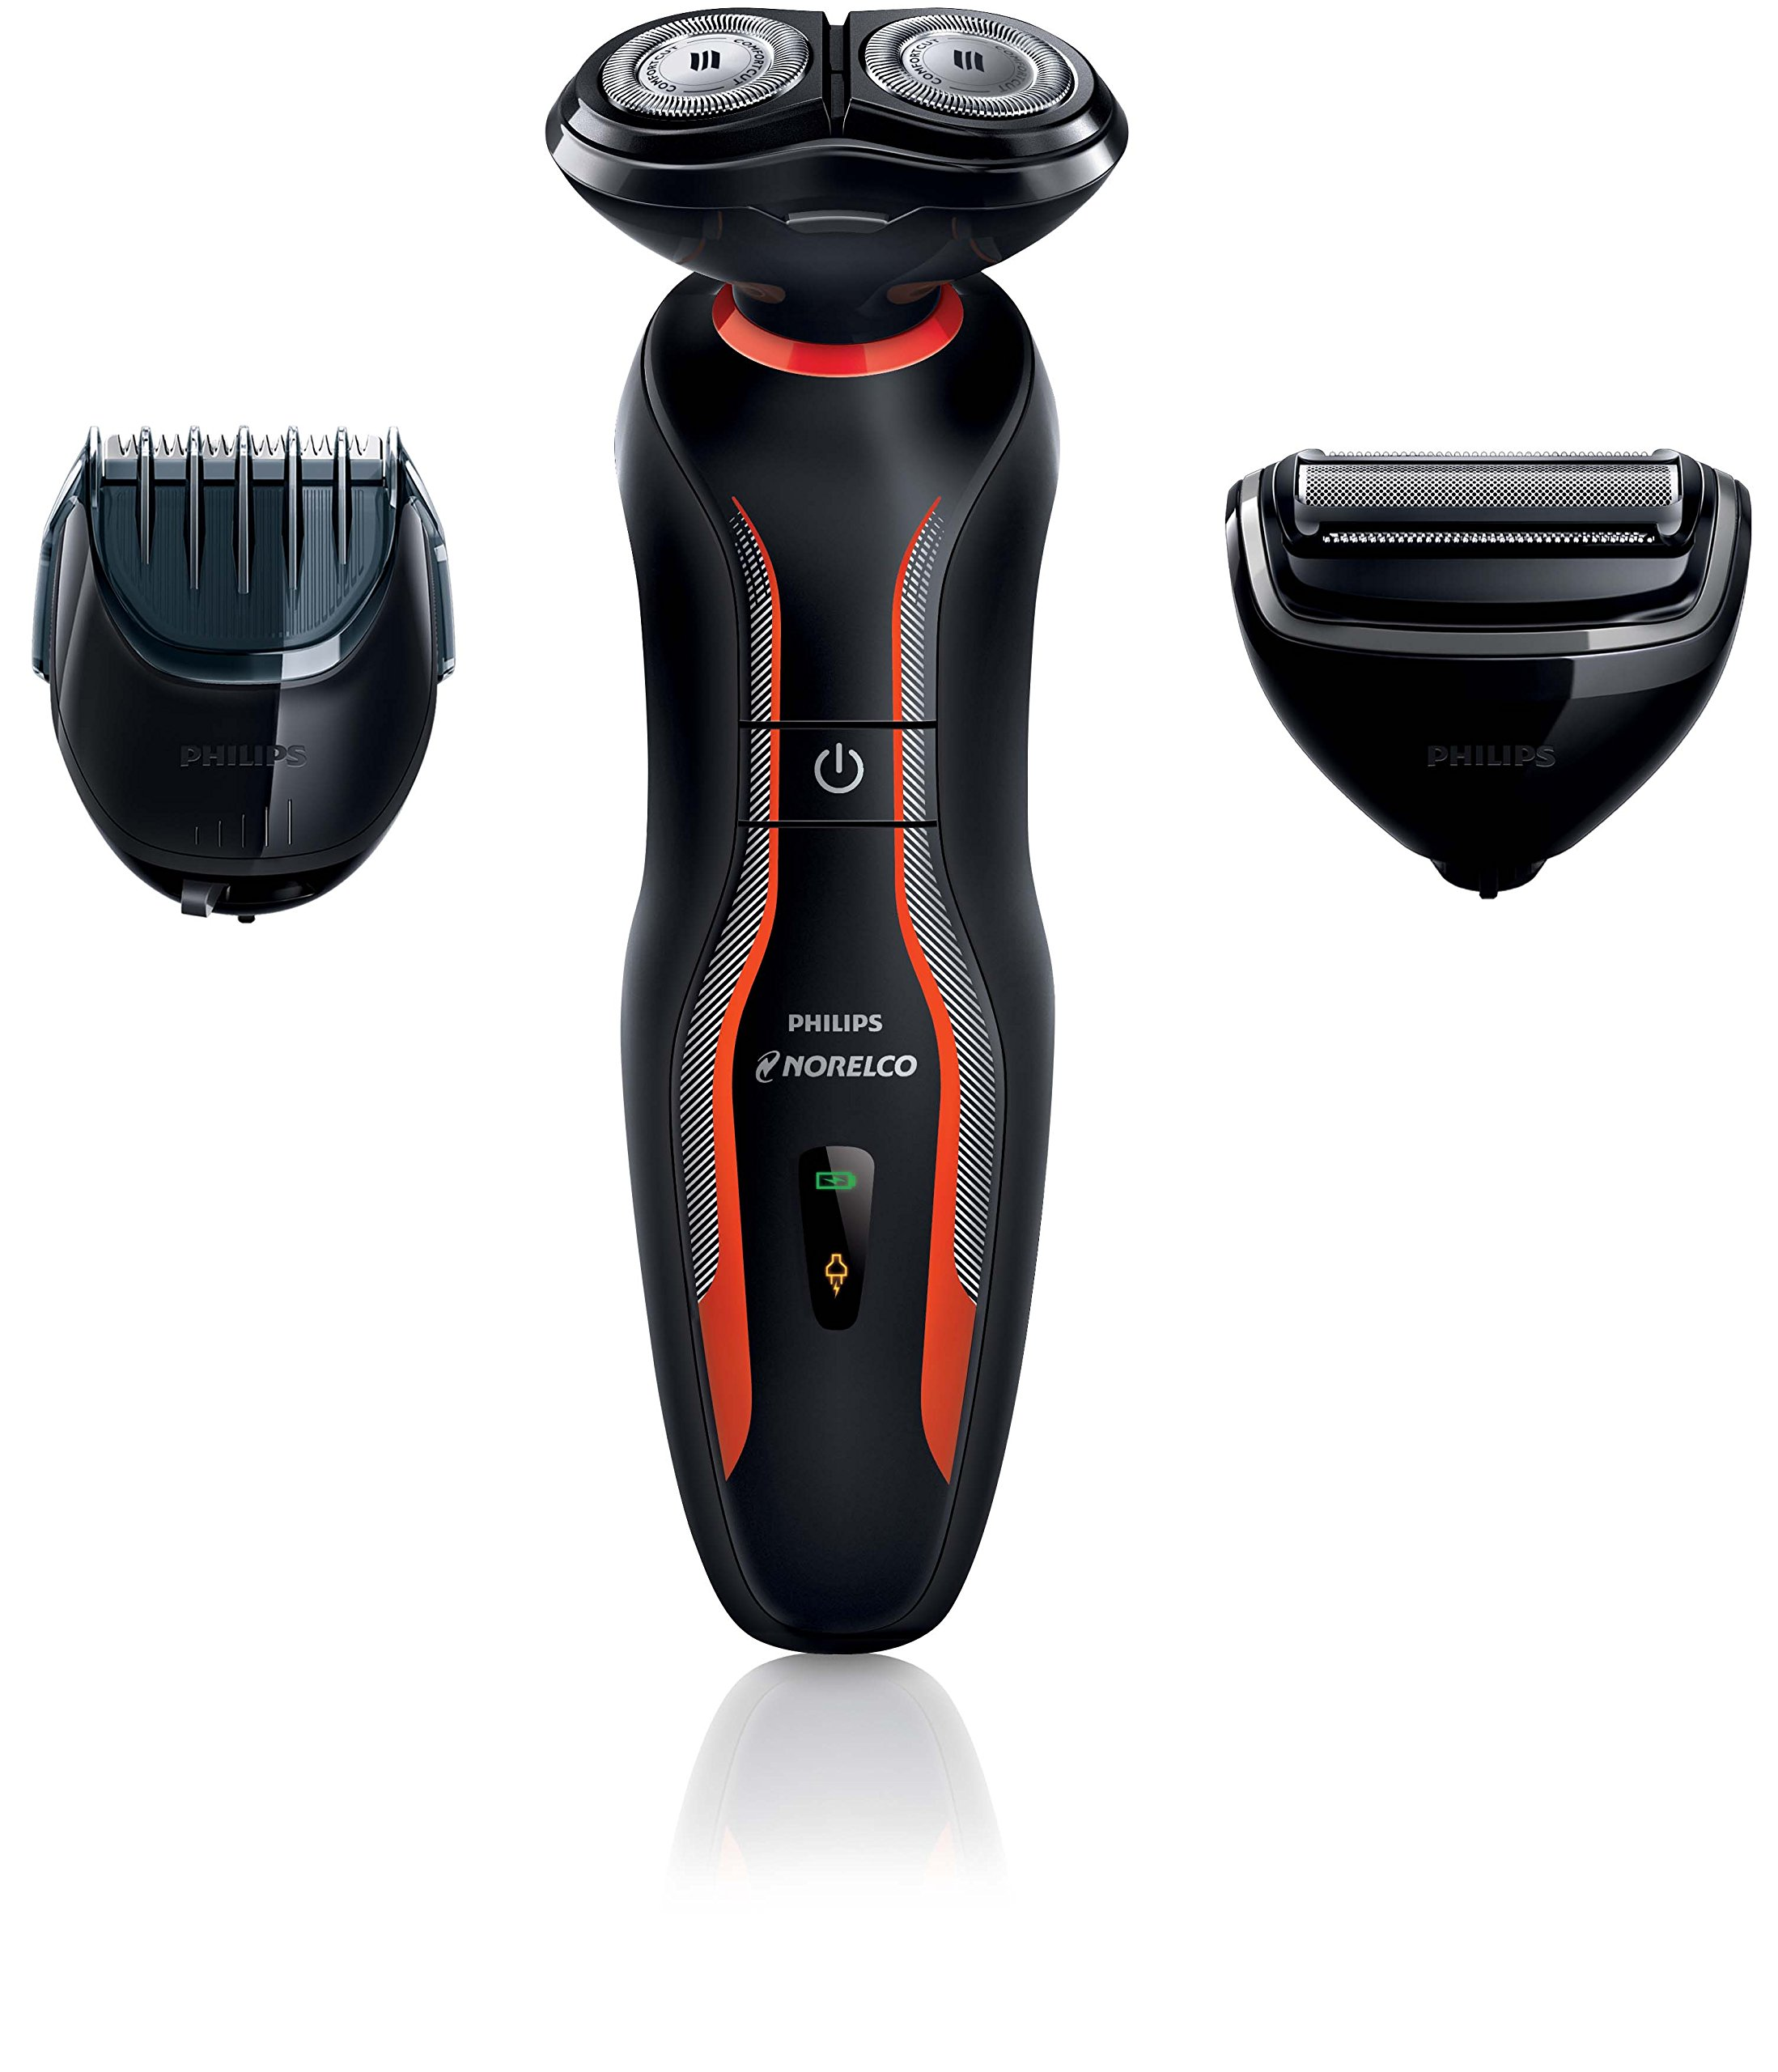 Philips Norelco Click and Style Shave Toolkit, NBA 2K16 Special Pack